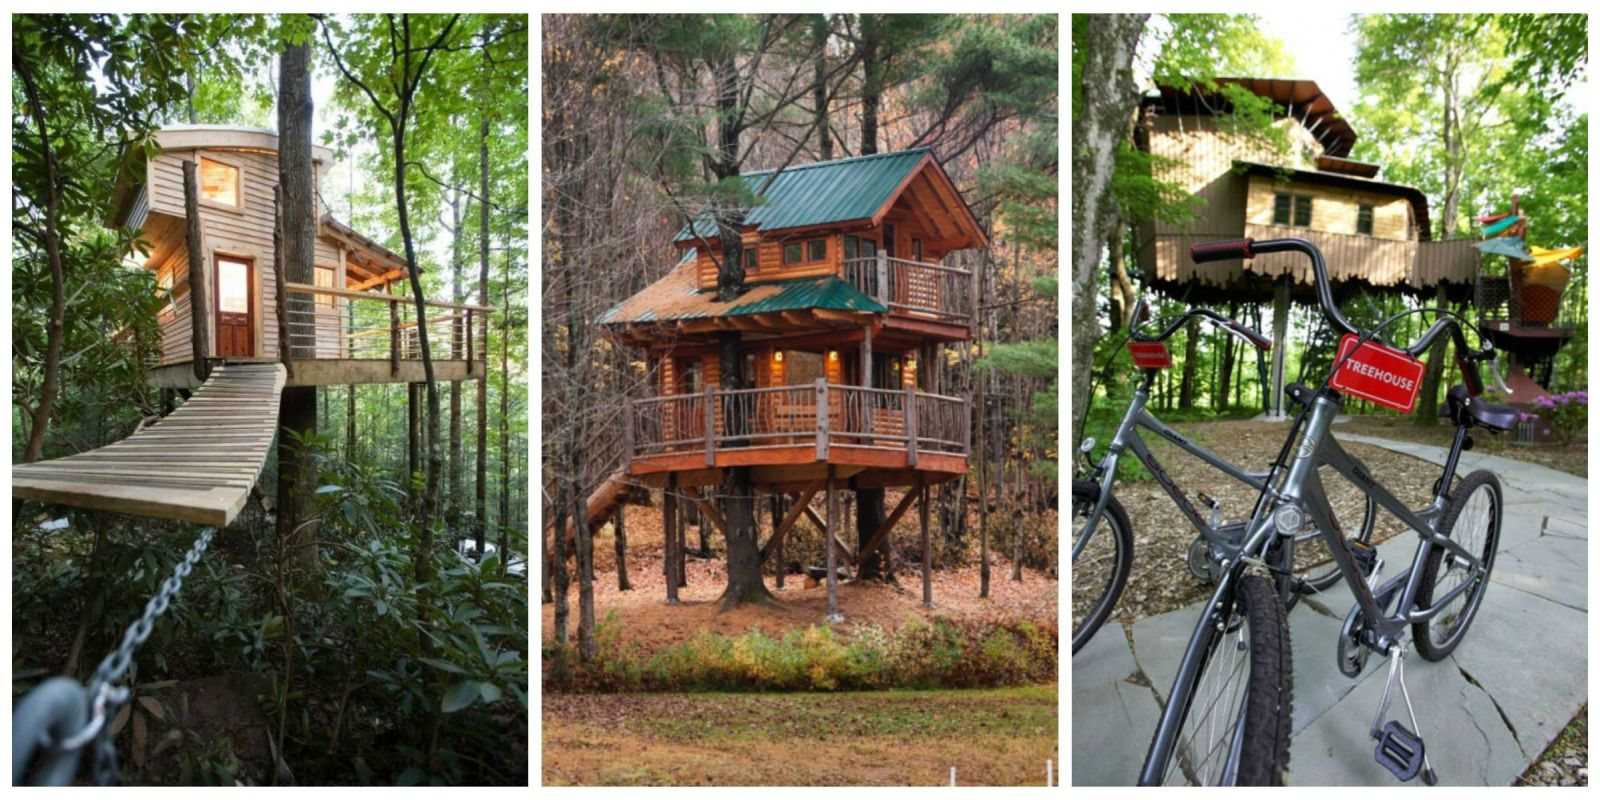 2017 01 tree house rentals in north carolina - 2017 01 Tree House Rentals In North Carolina 20